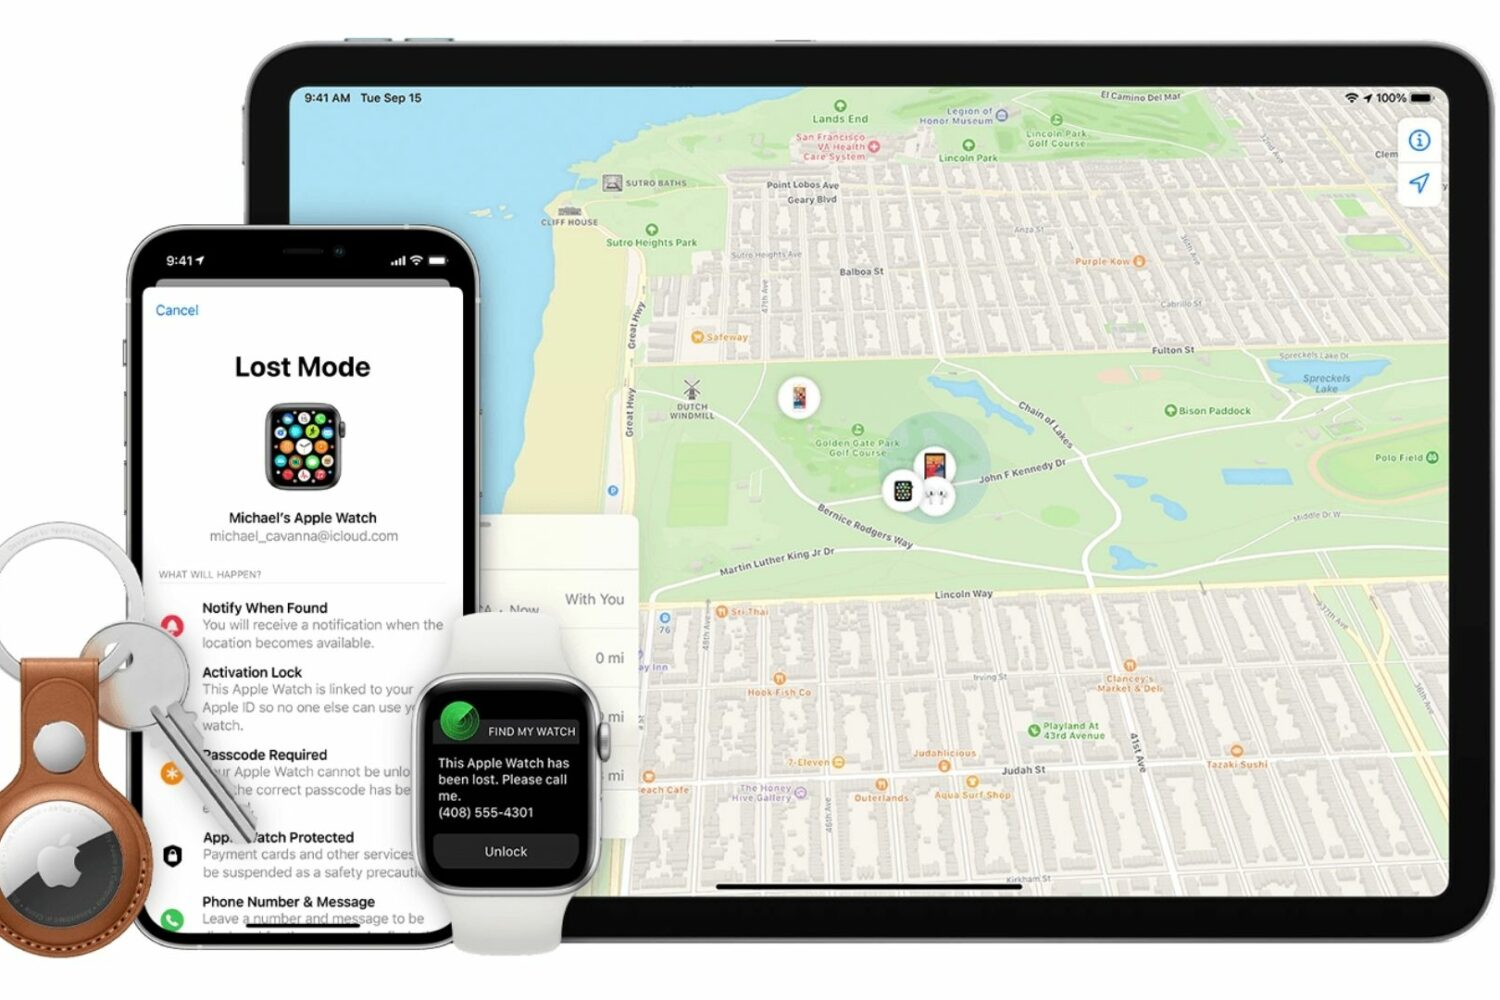 How to find your missing iPhone, iPad, Mac, or AirTag using the Find My app on your friend's iPhone